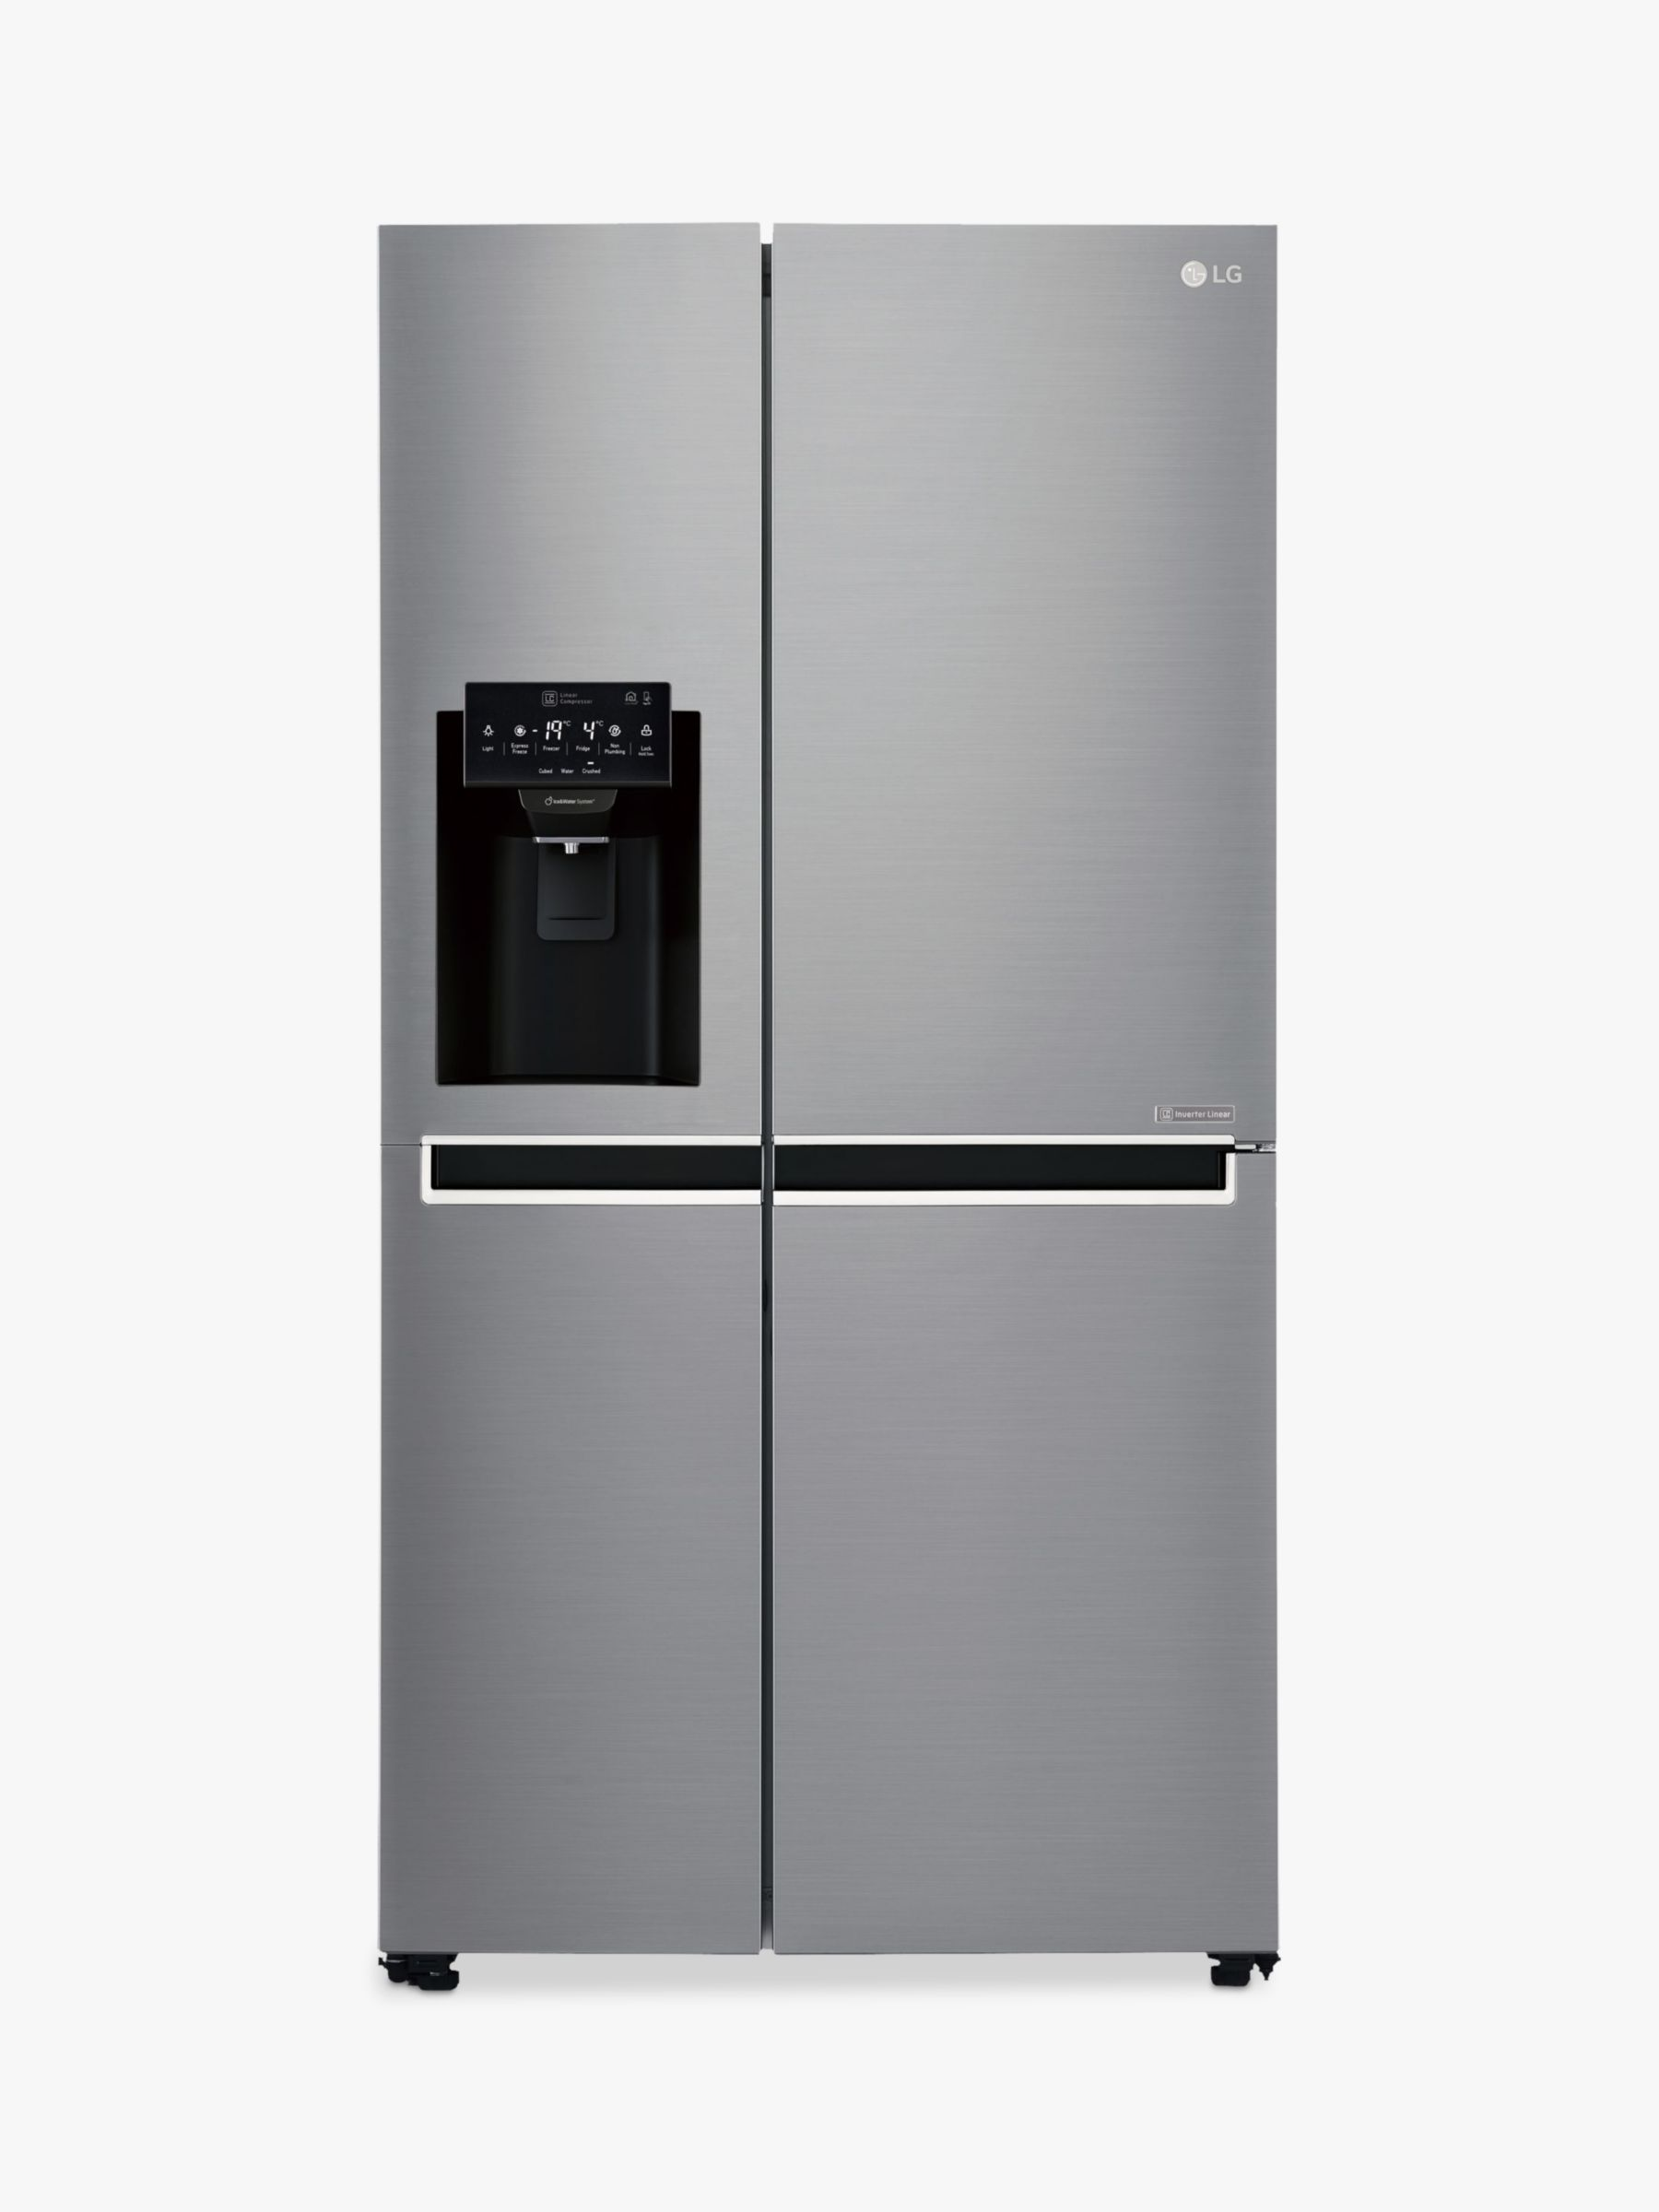 LG LG GSL761PZXV American Style Fridge Freezer, A+ Energy Rating, 90cm Wide, Non-Plumbed Water and Ice Dispenser, Shiny Steel